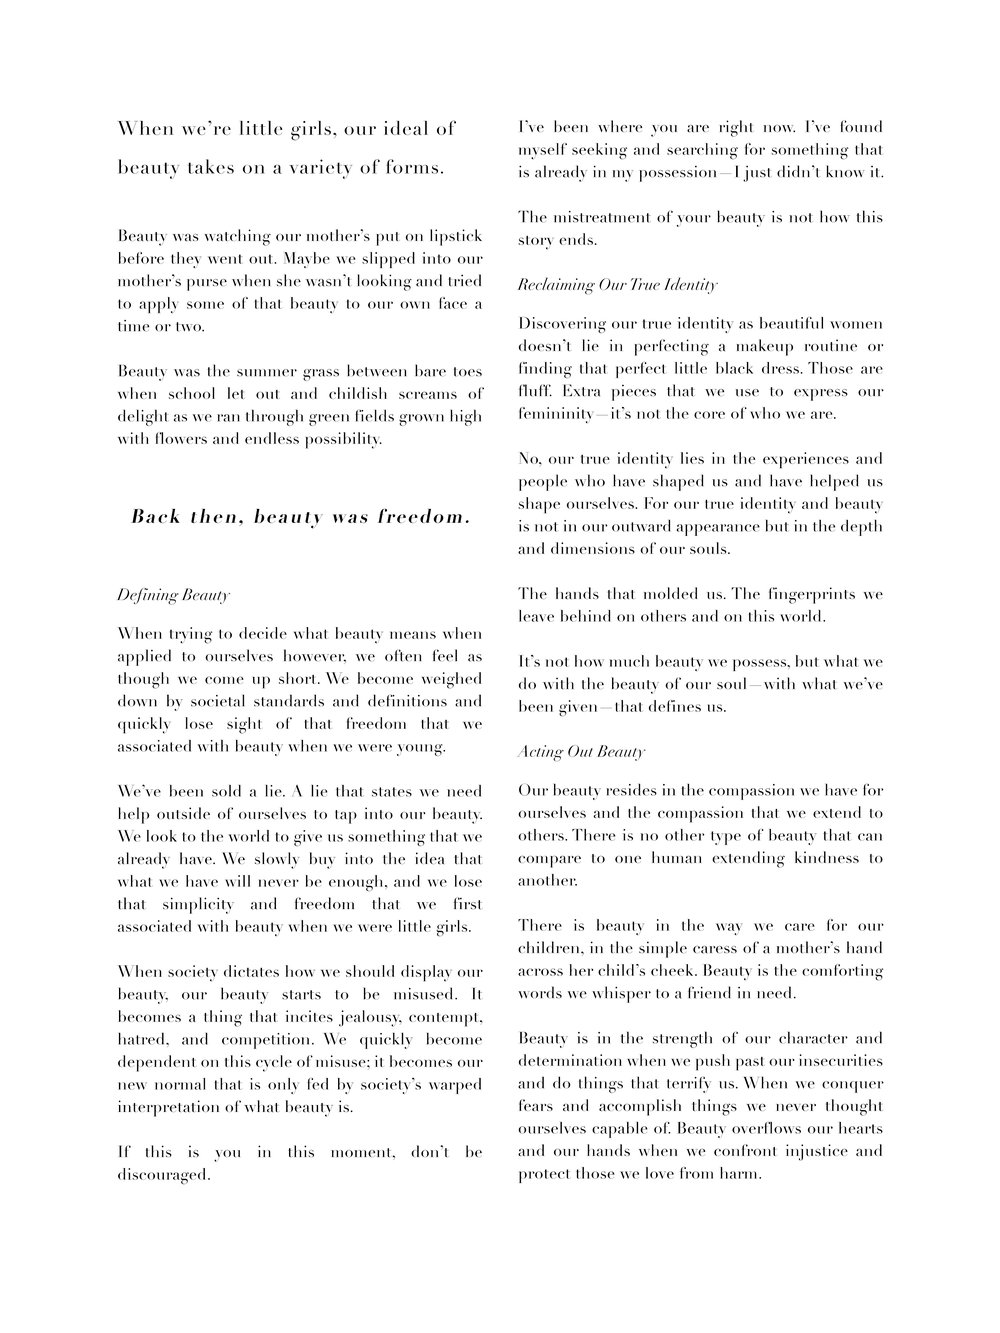 Bria Article PG 2.jpg